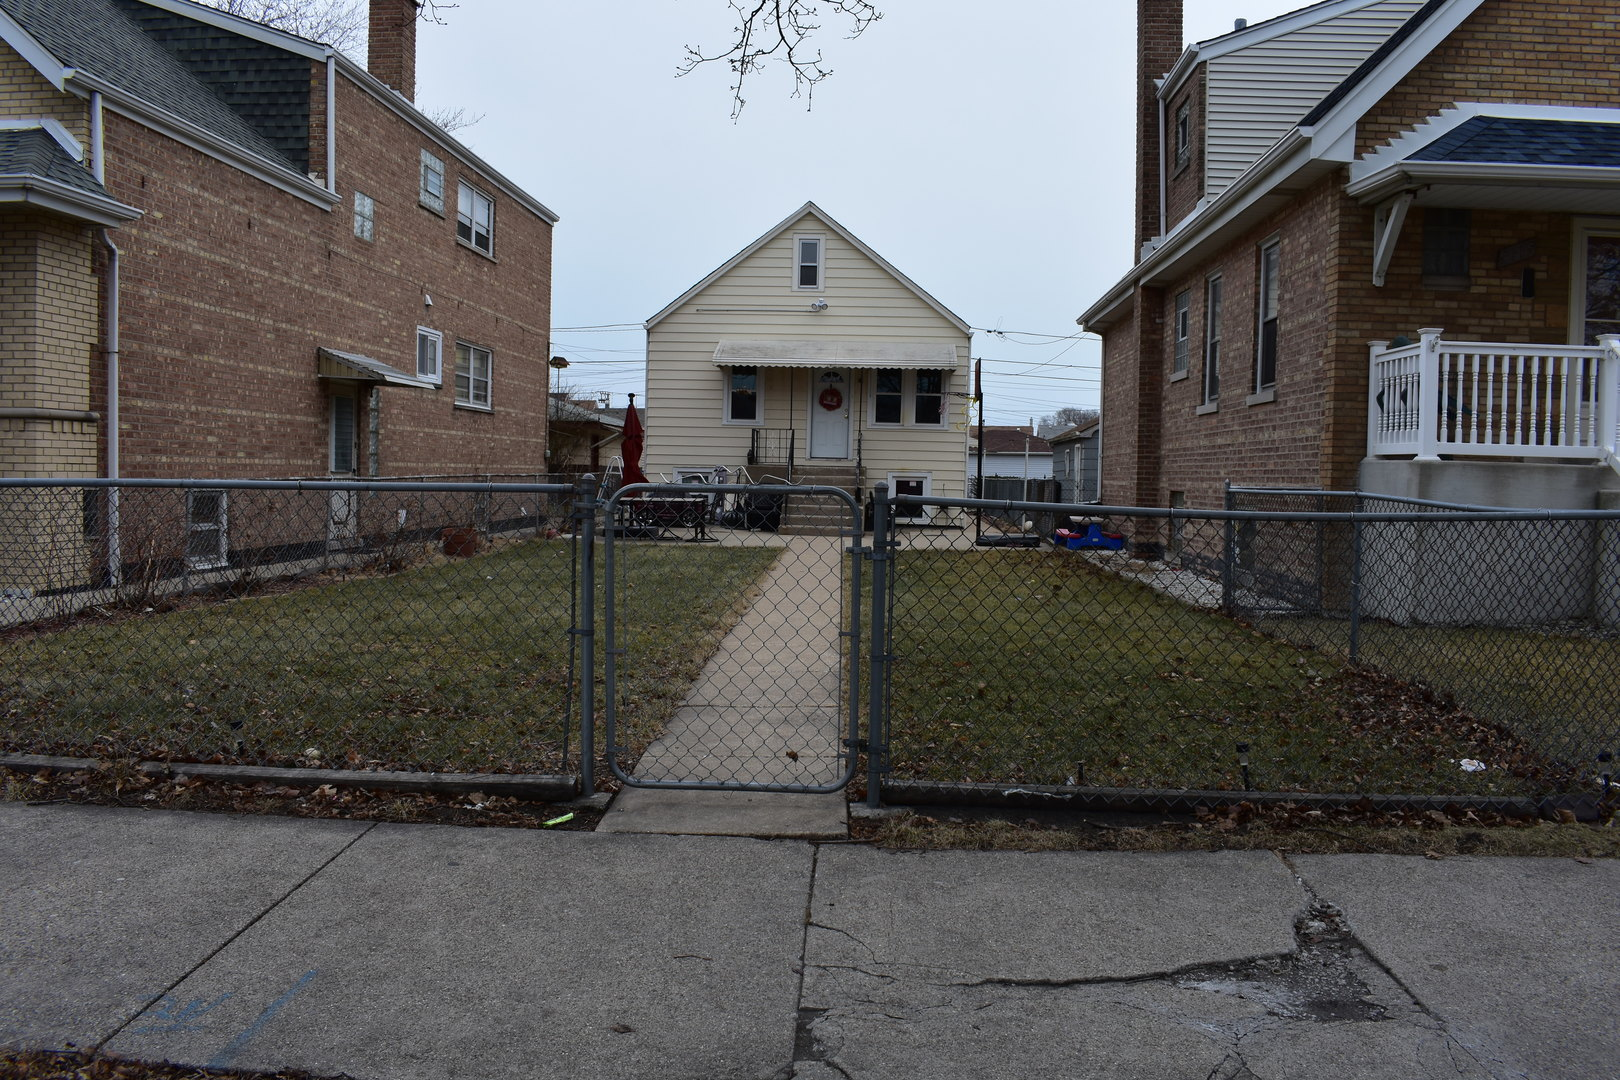 5611 Karlov ,Chicago, Illinois 60629